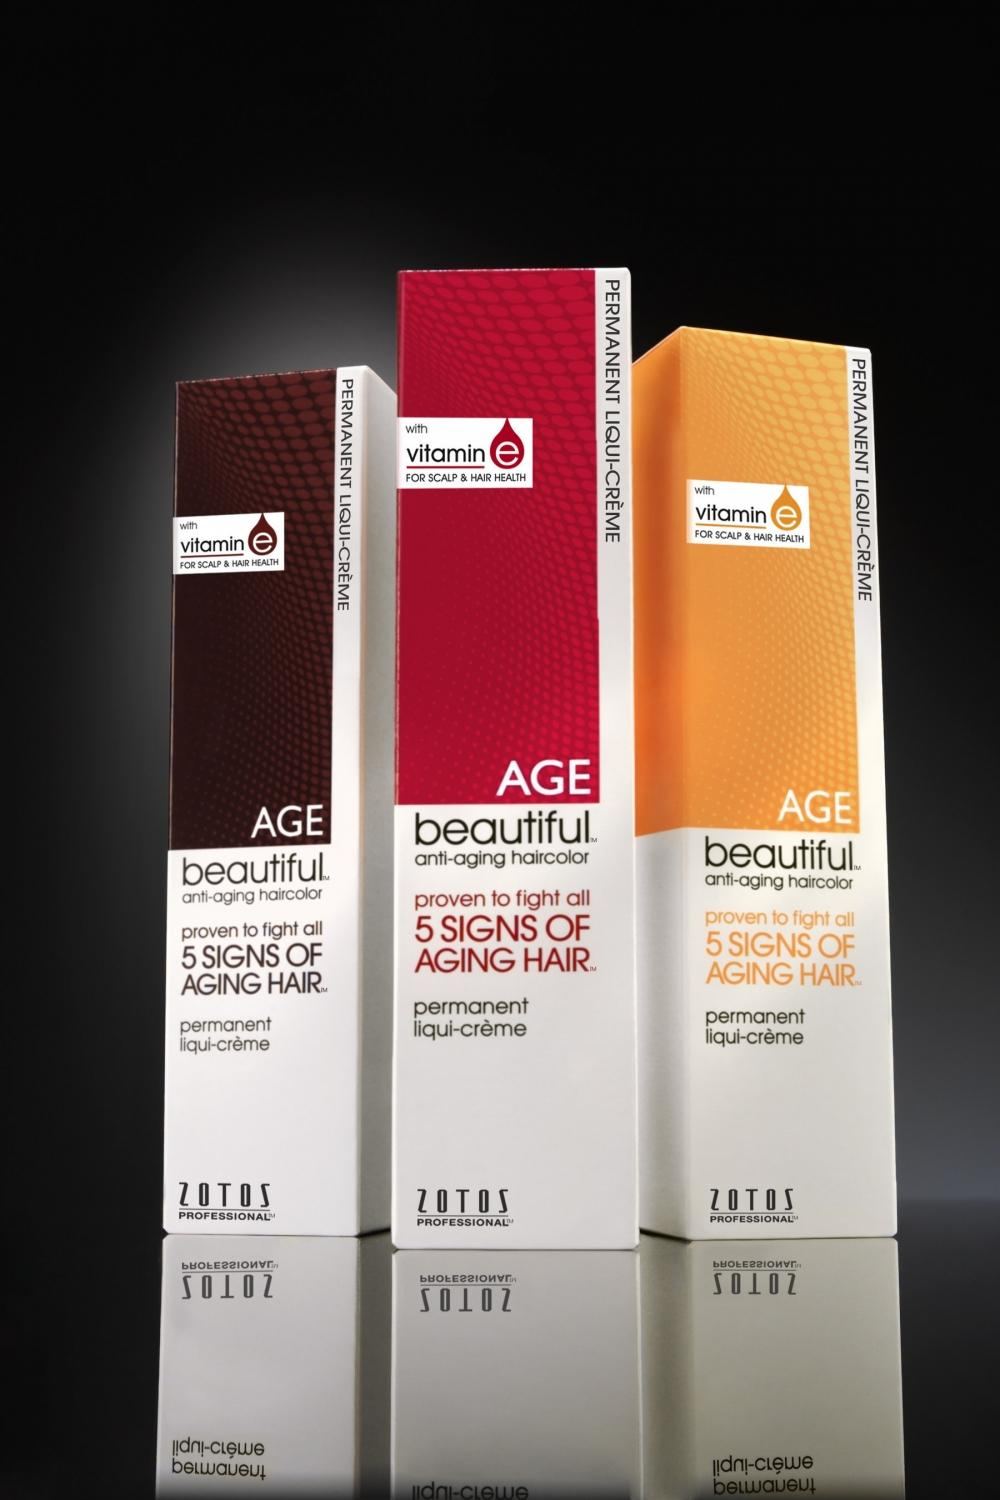 Zotos Adds To AGEbeautiful Haircolor Line